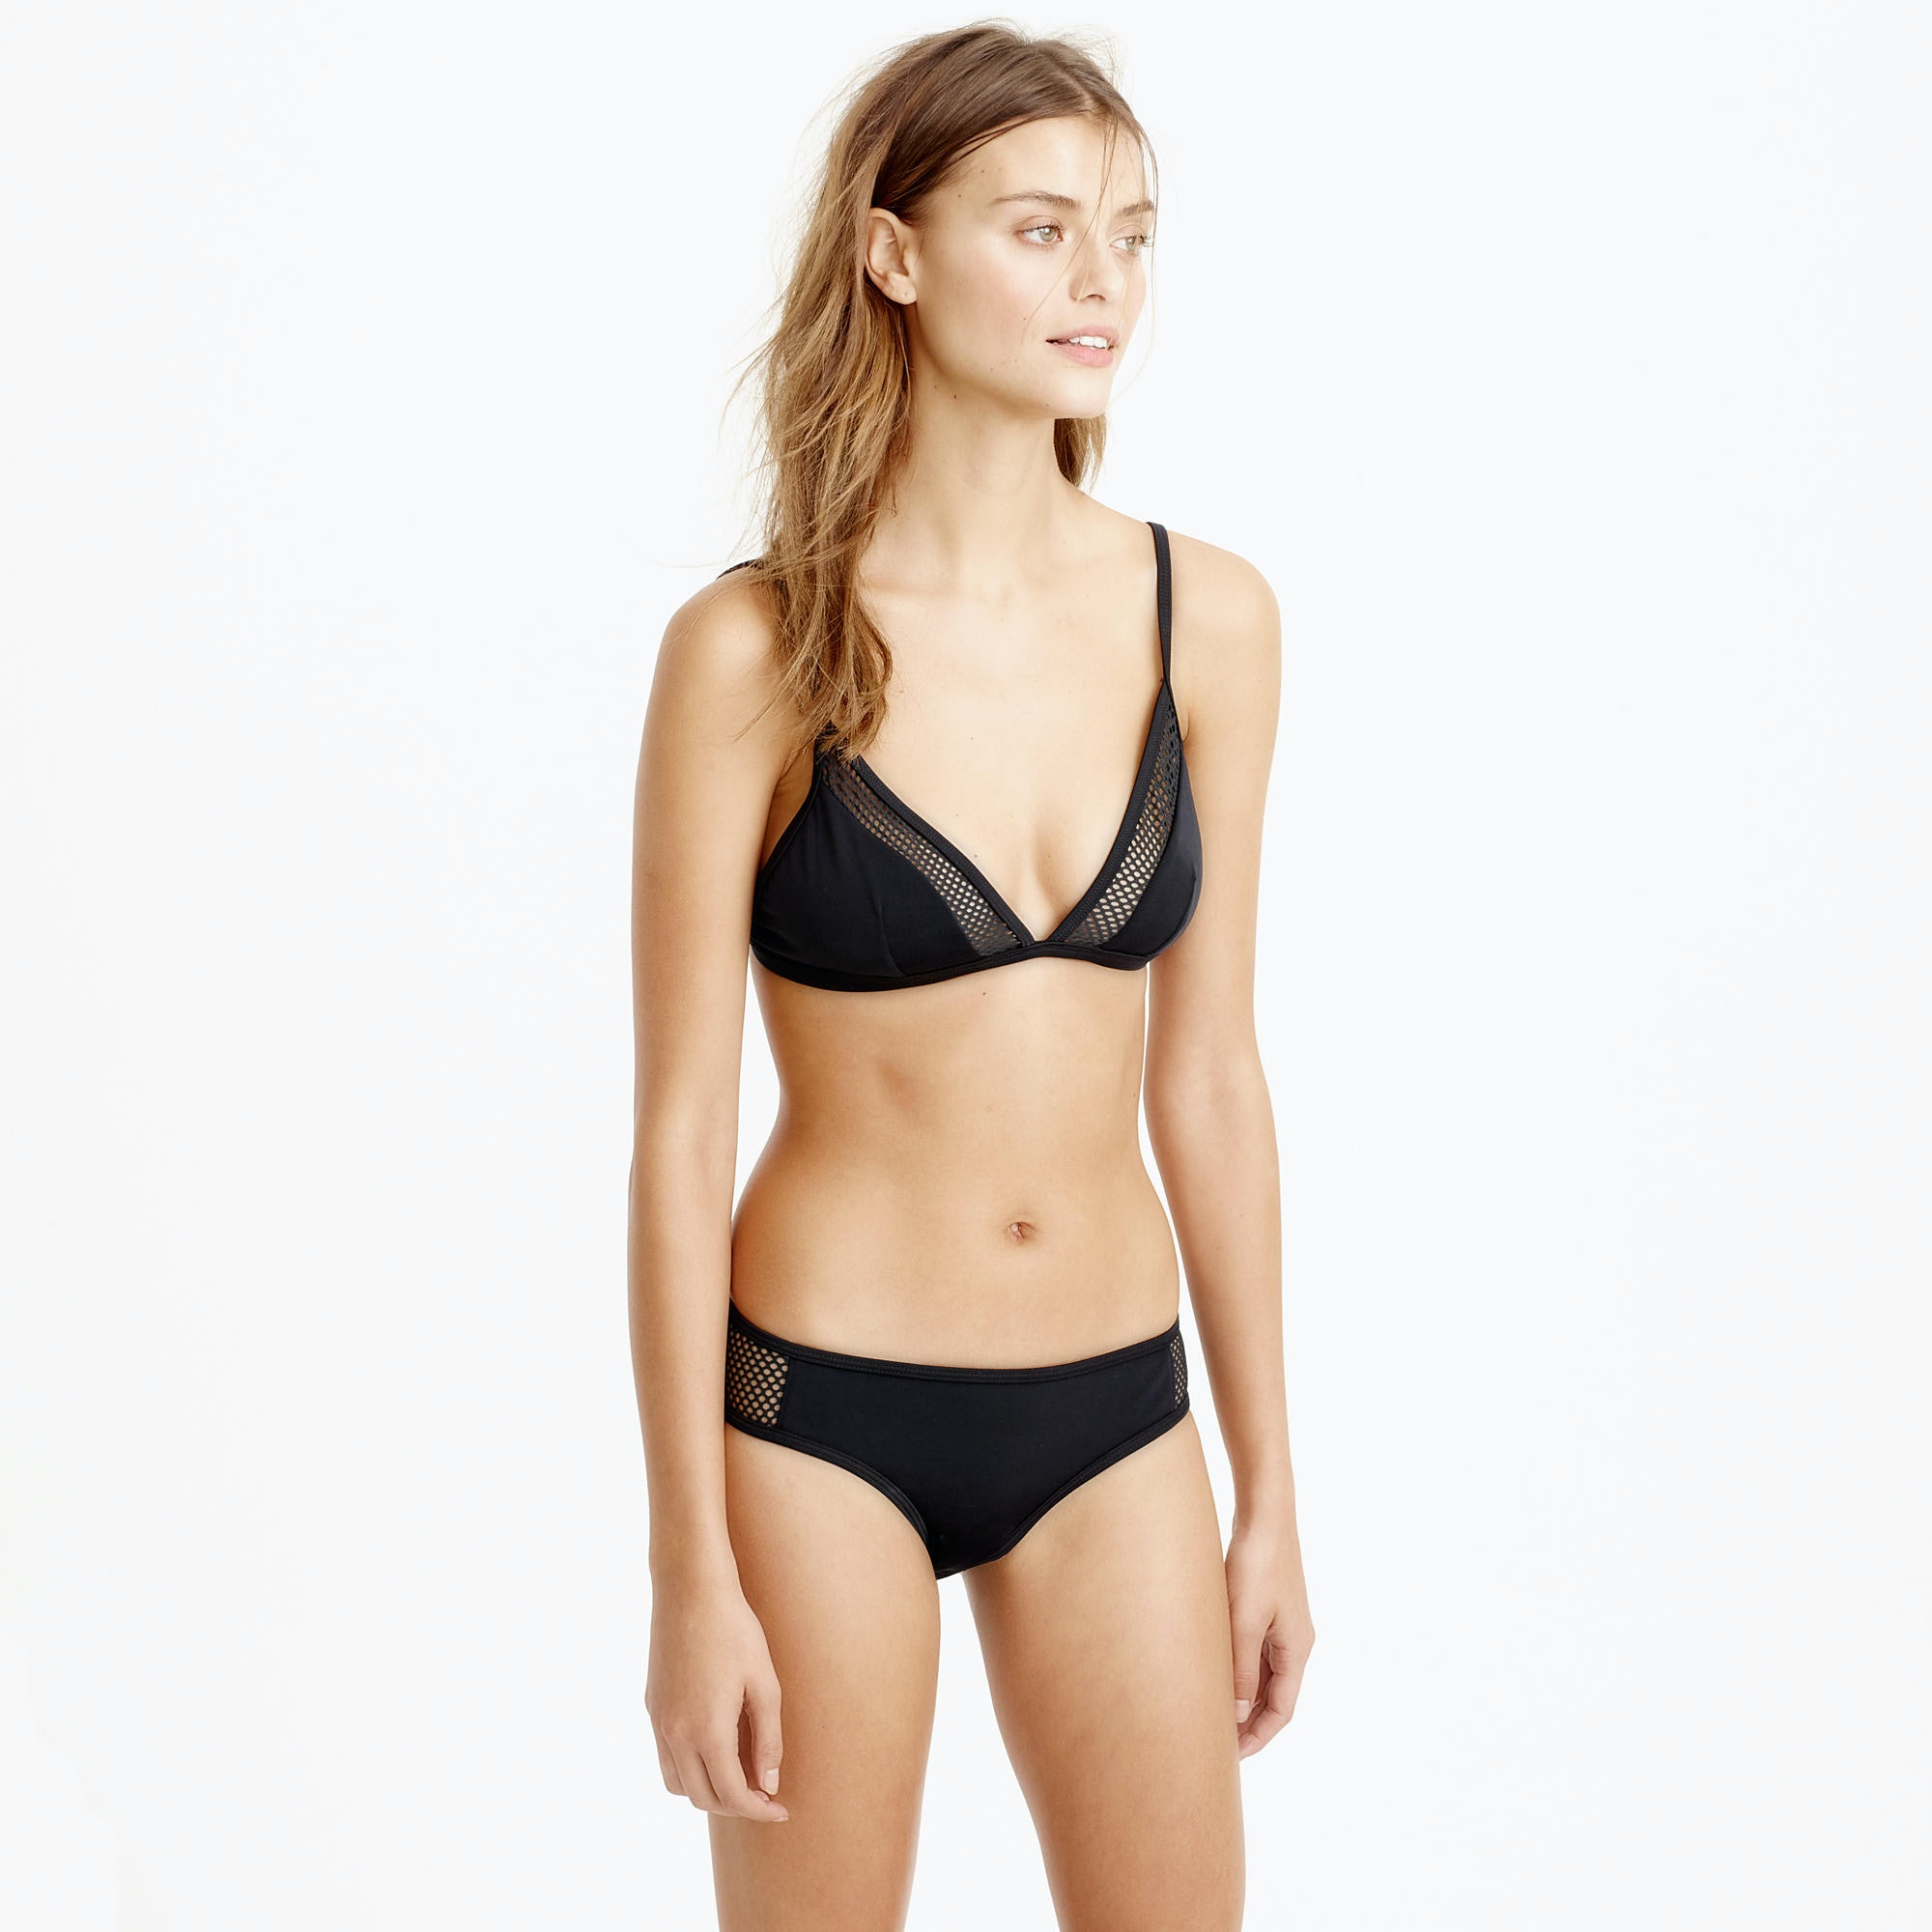 a94de82ef8d06 50 Cute Black Swimsuits For The Summer That Are Anything But Basic